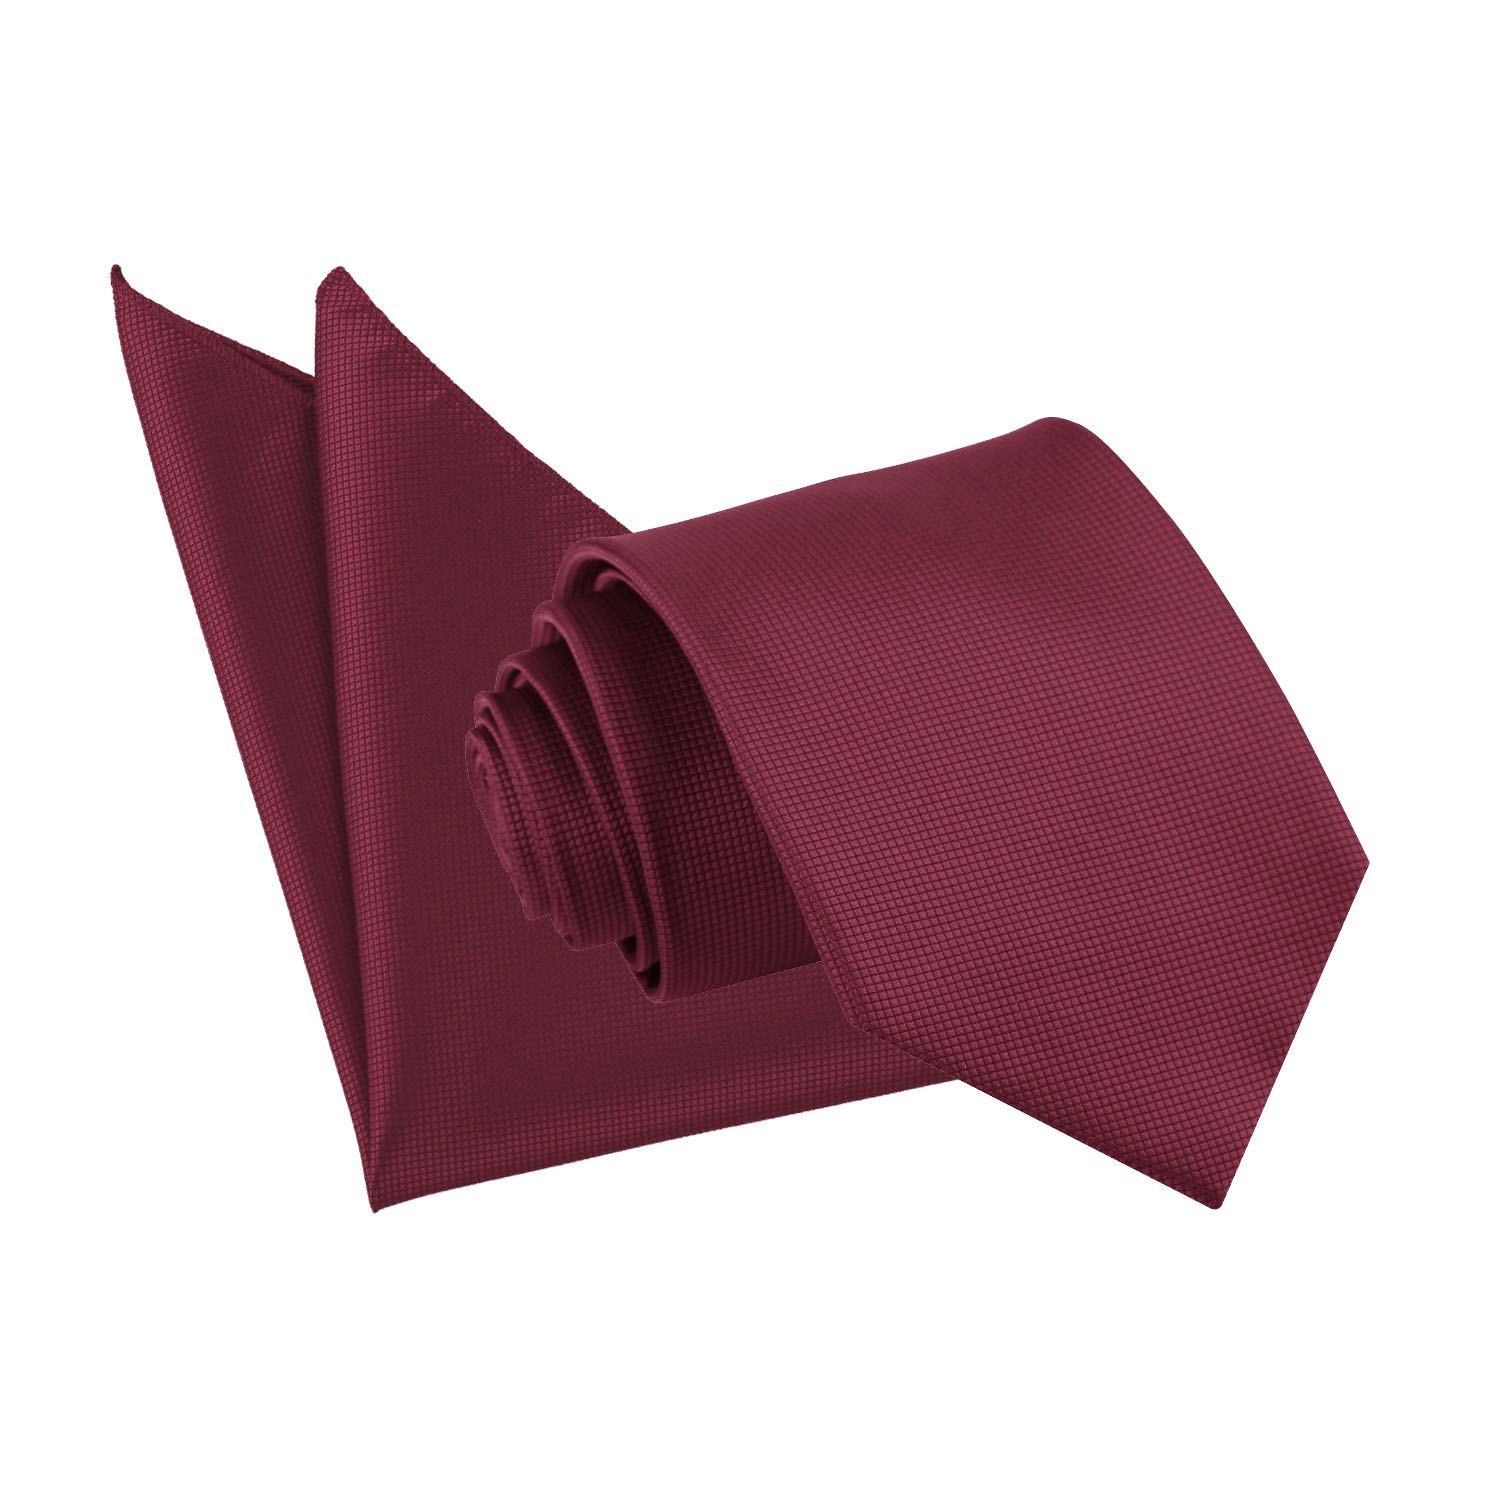 701b5586e57c Details about DQT Woven Plain Solid Check Burgundy Formal Mens Slim Skinny  Tie Hanky Set